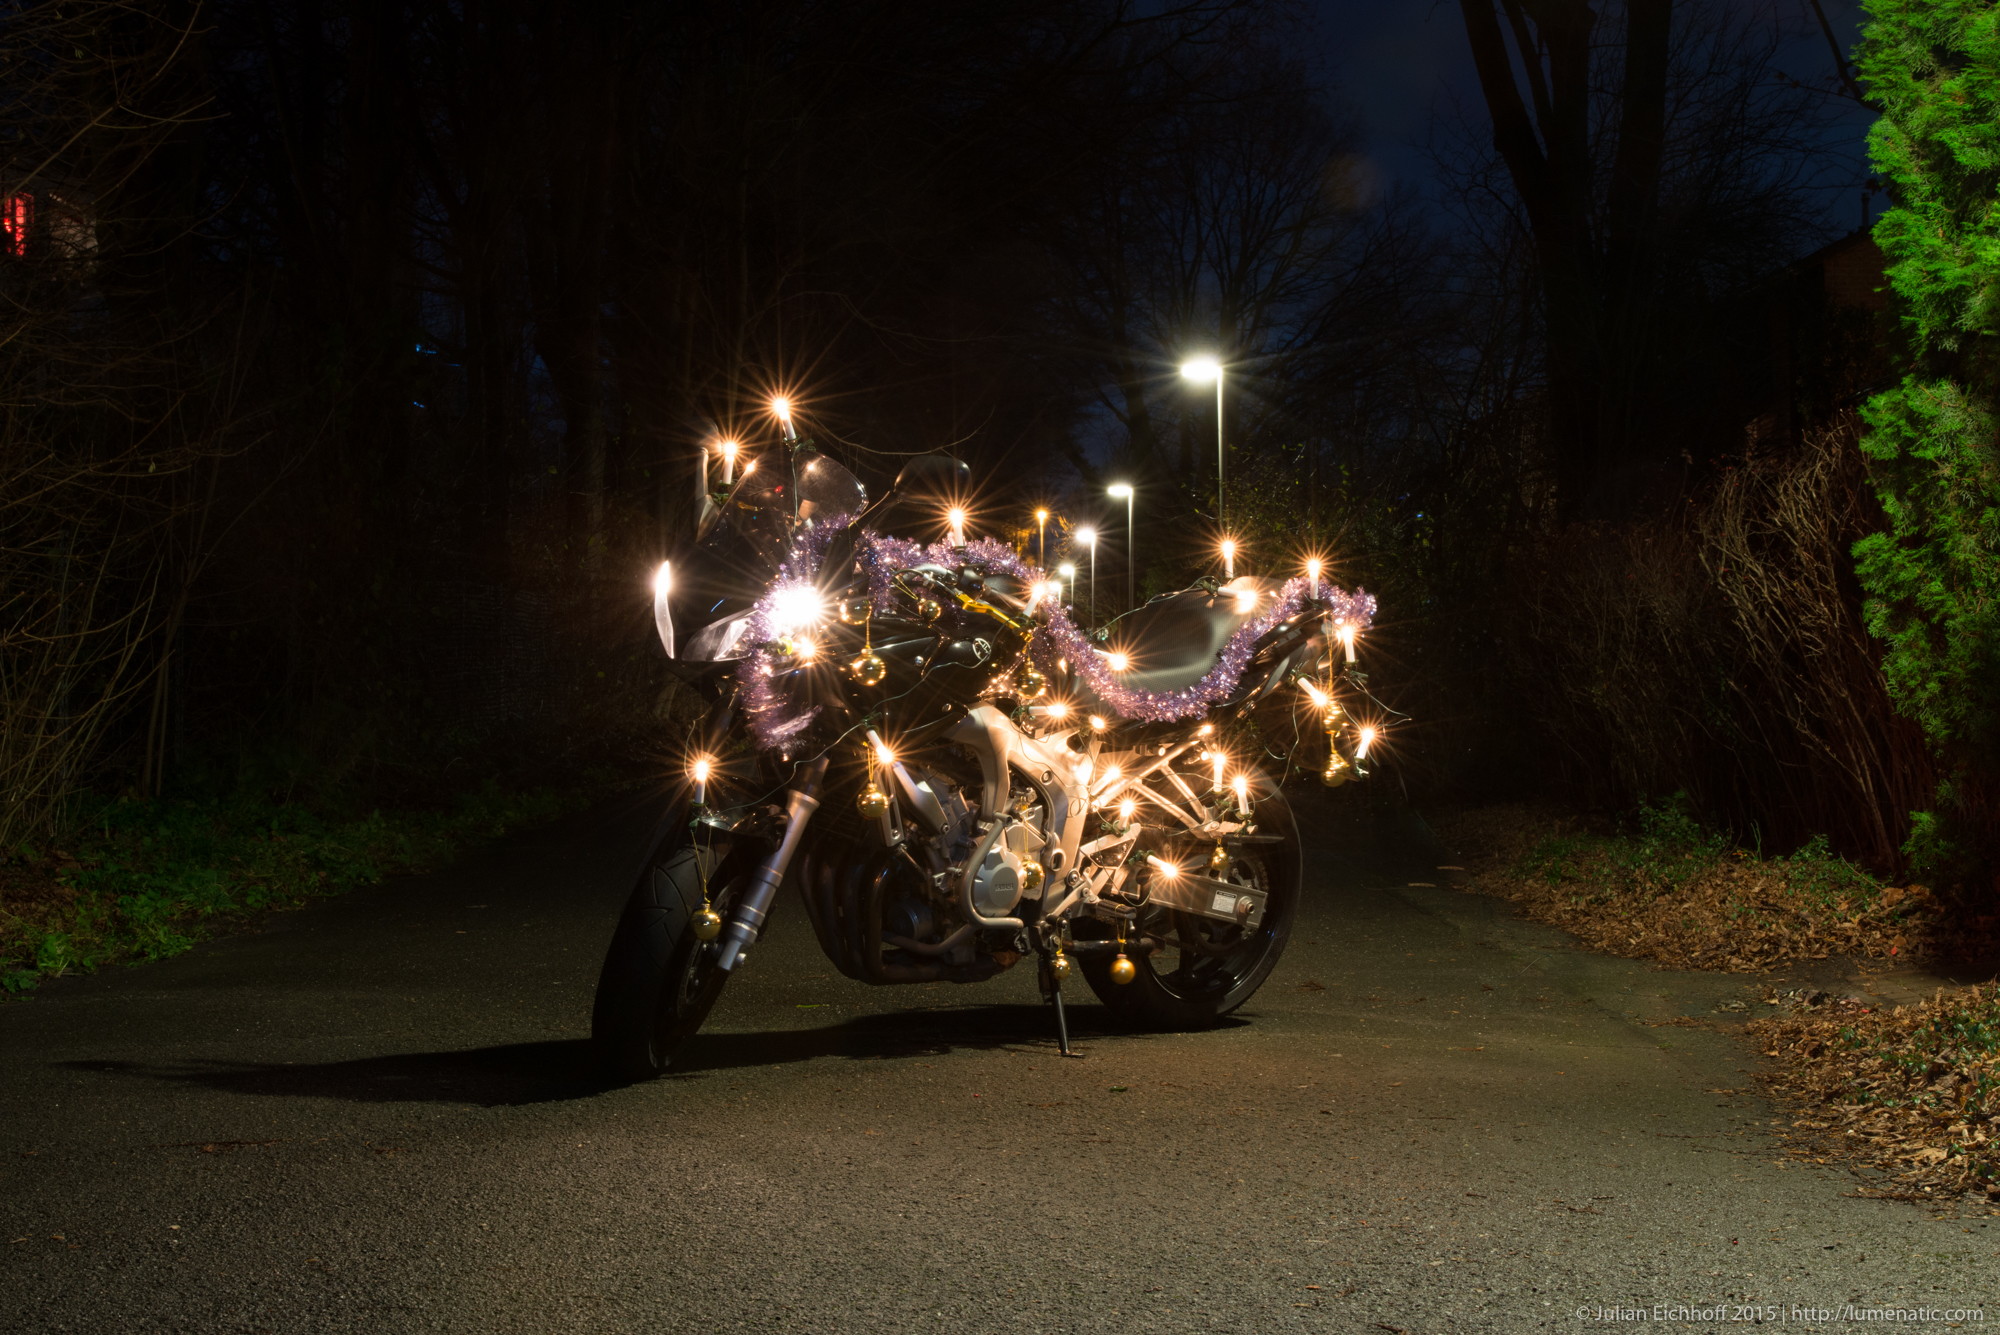 How the christmas motorbike photo was shot